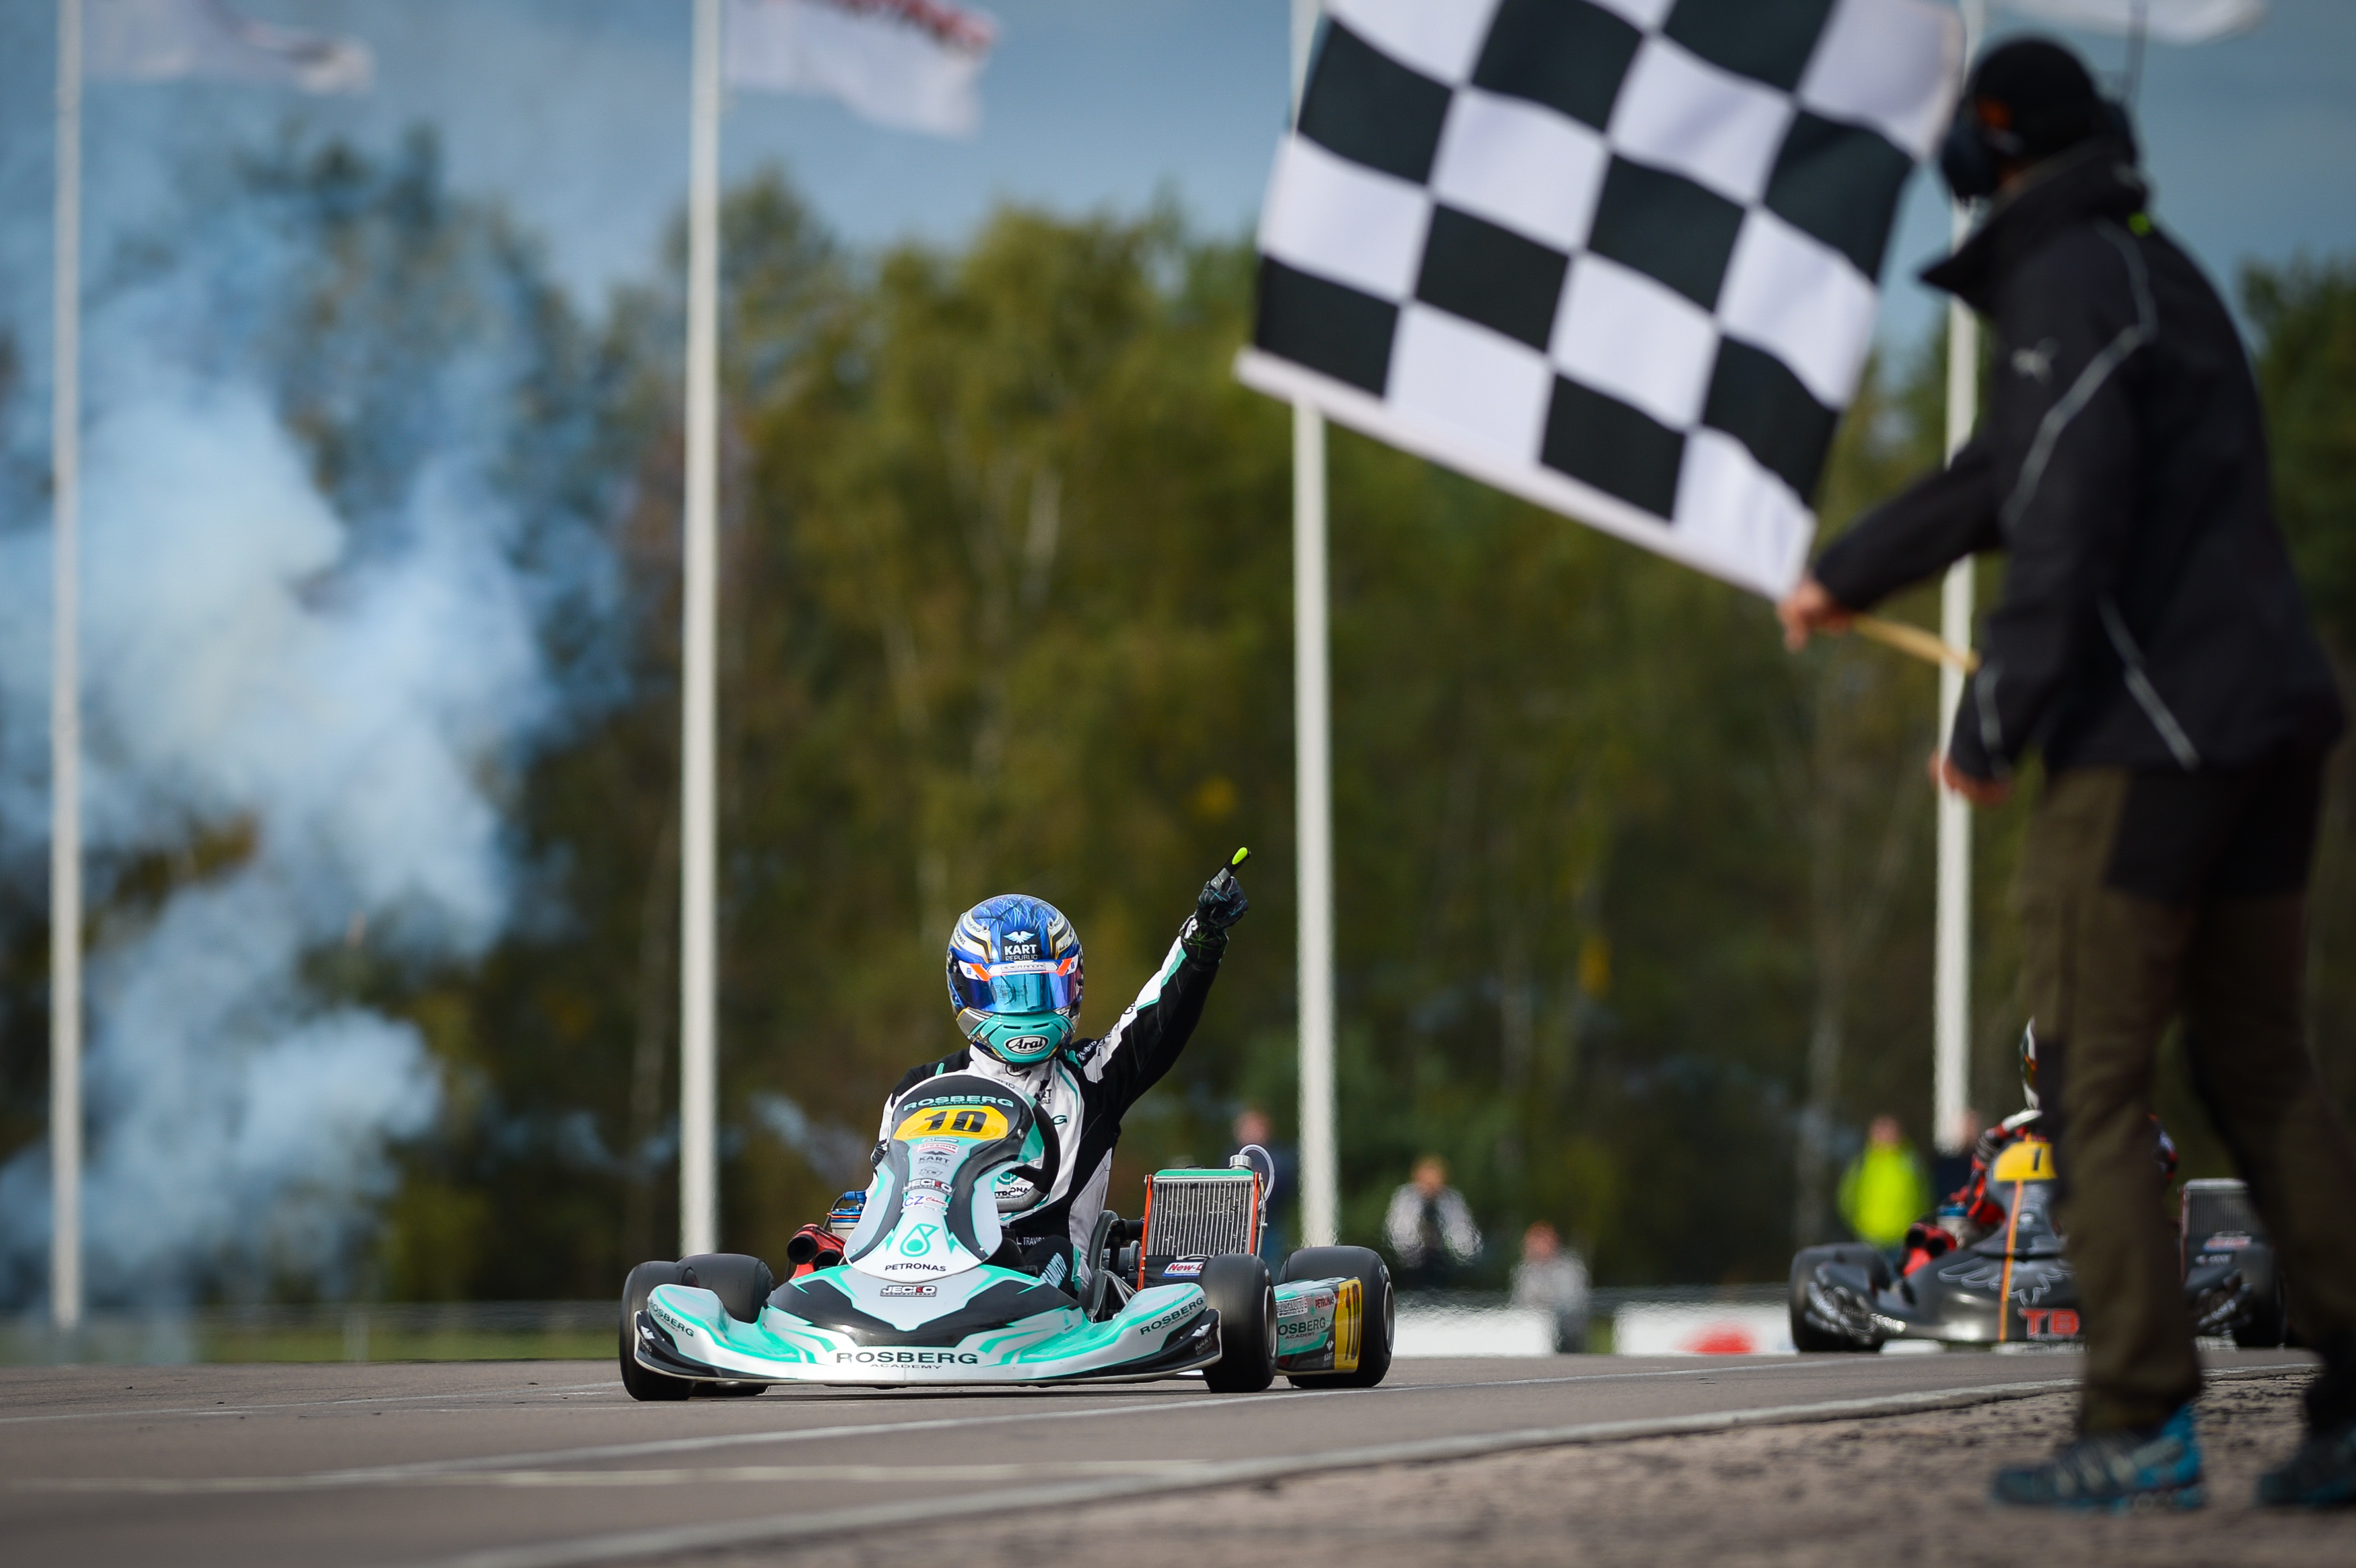 Fia Karting Rosberg Racing And Travisanutto Champions Of The World